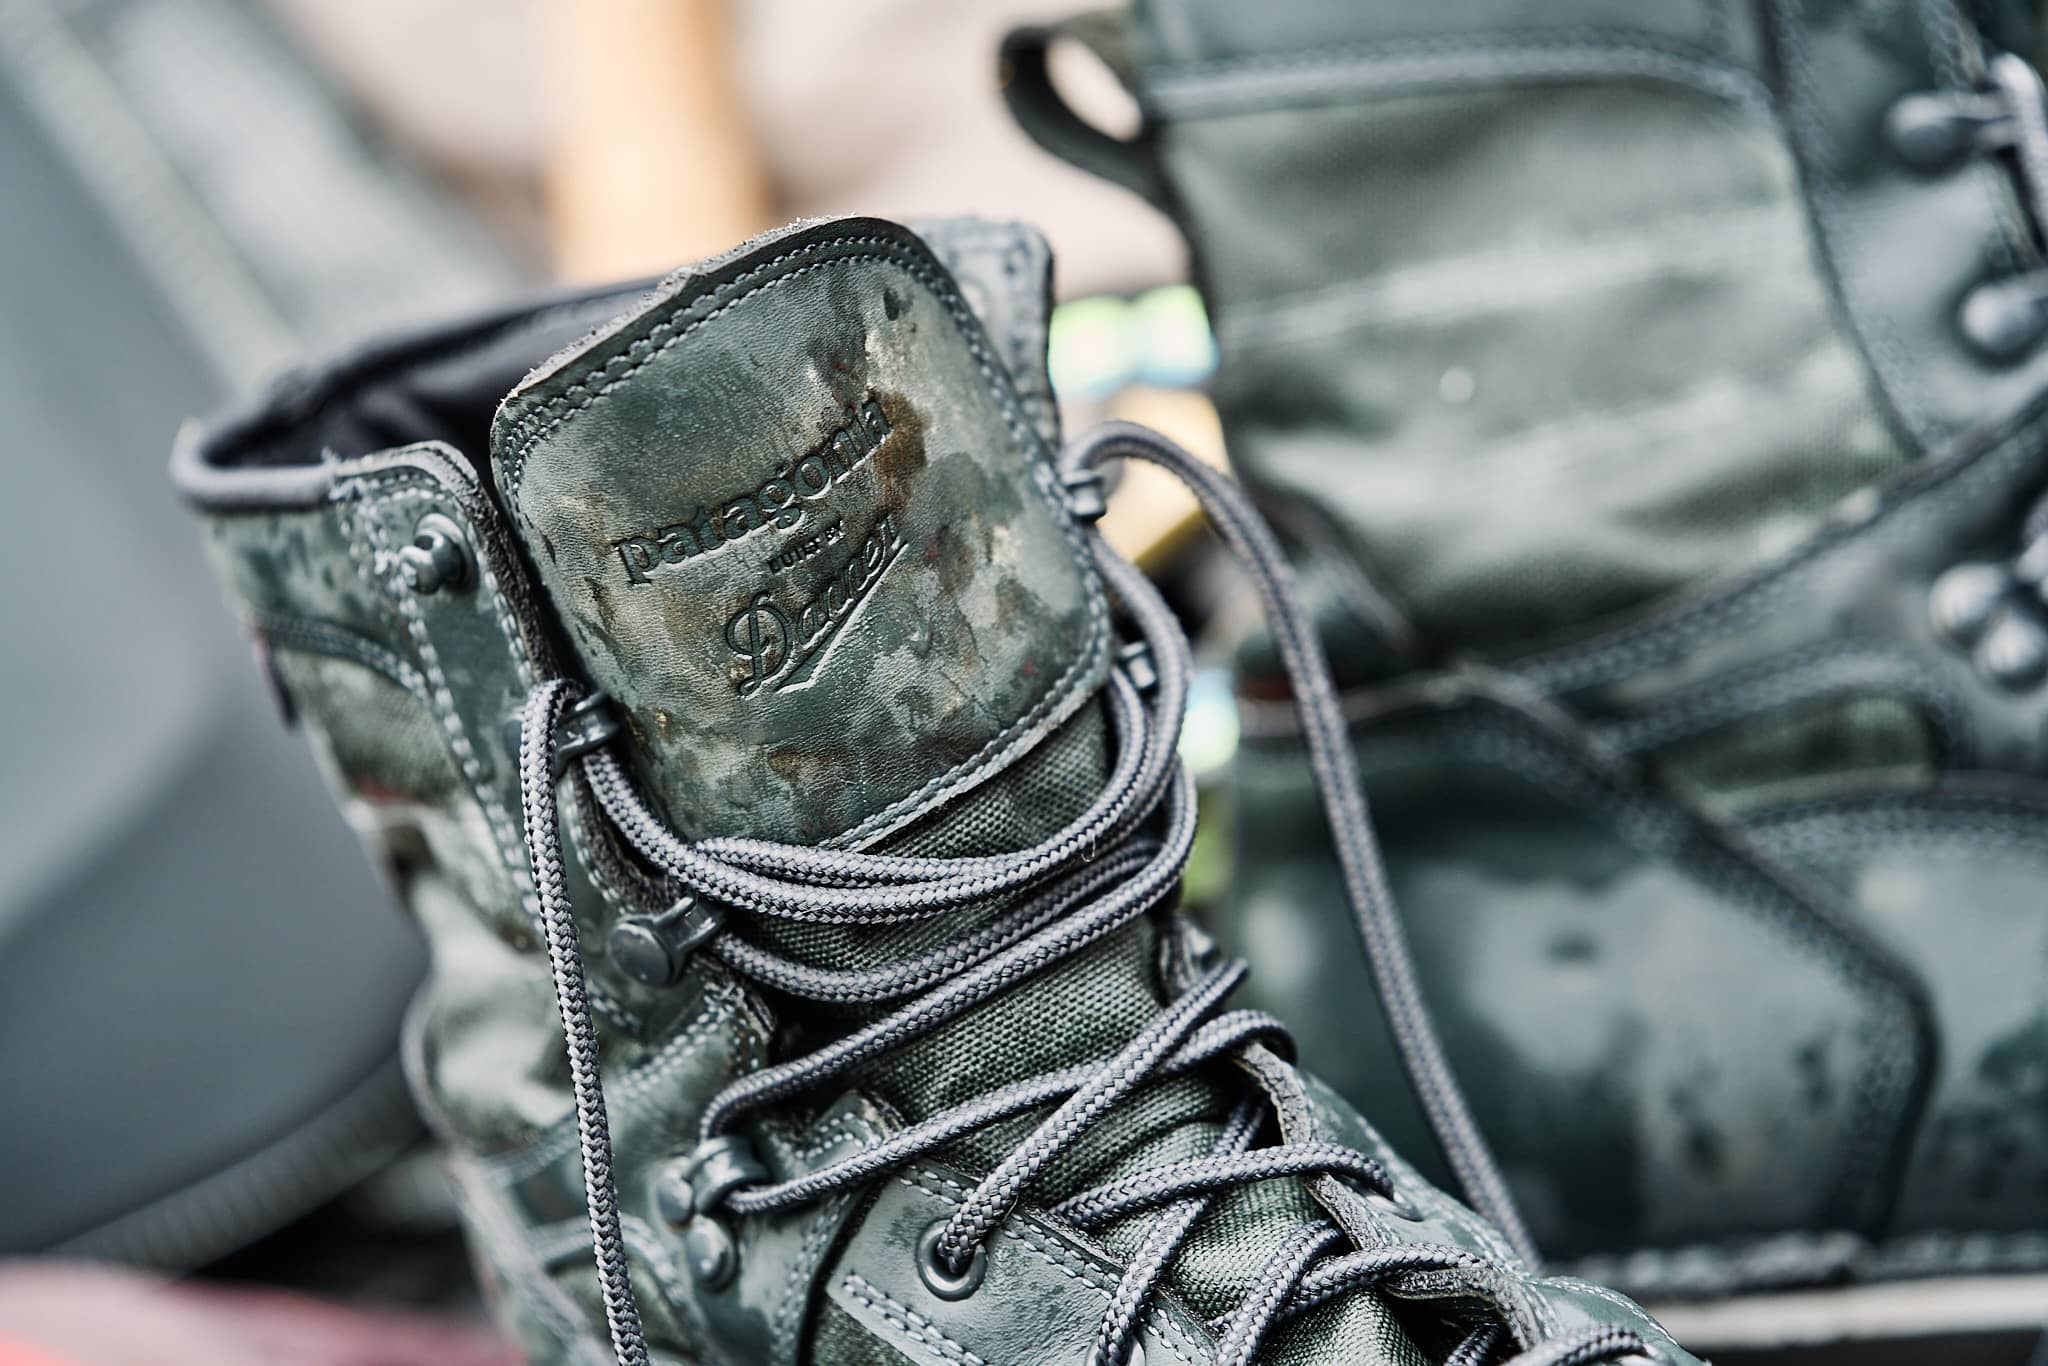 Closeup view of the Patagonia and Danner logos on the tongue of the wading boots